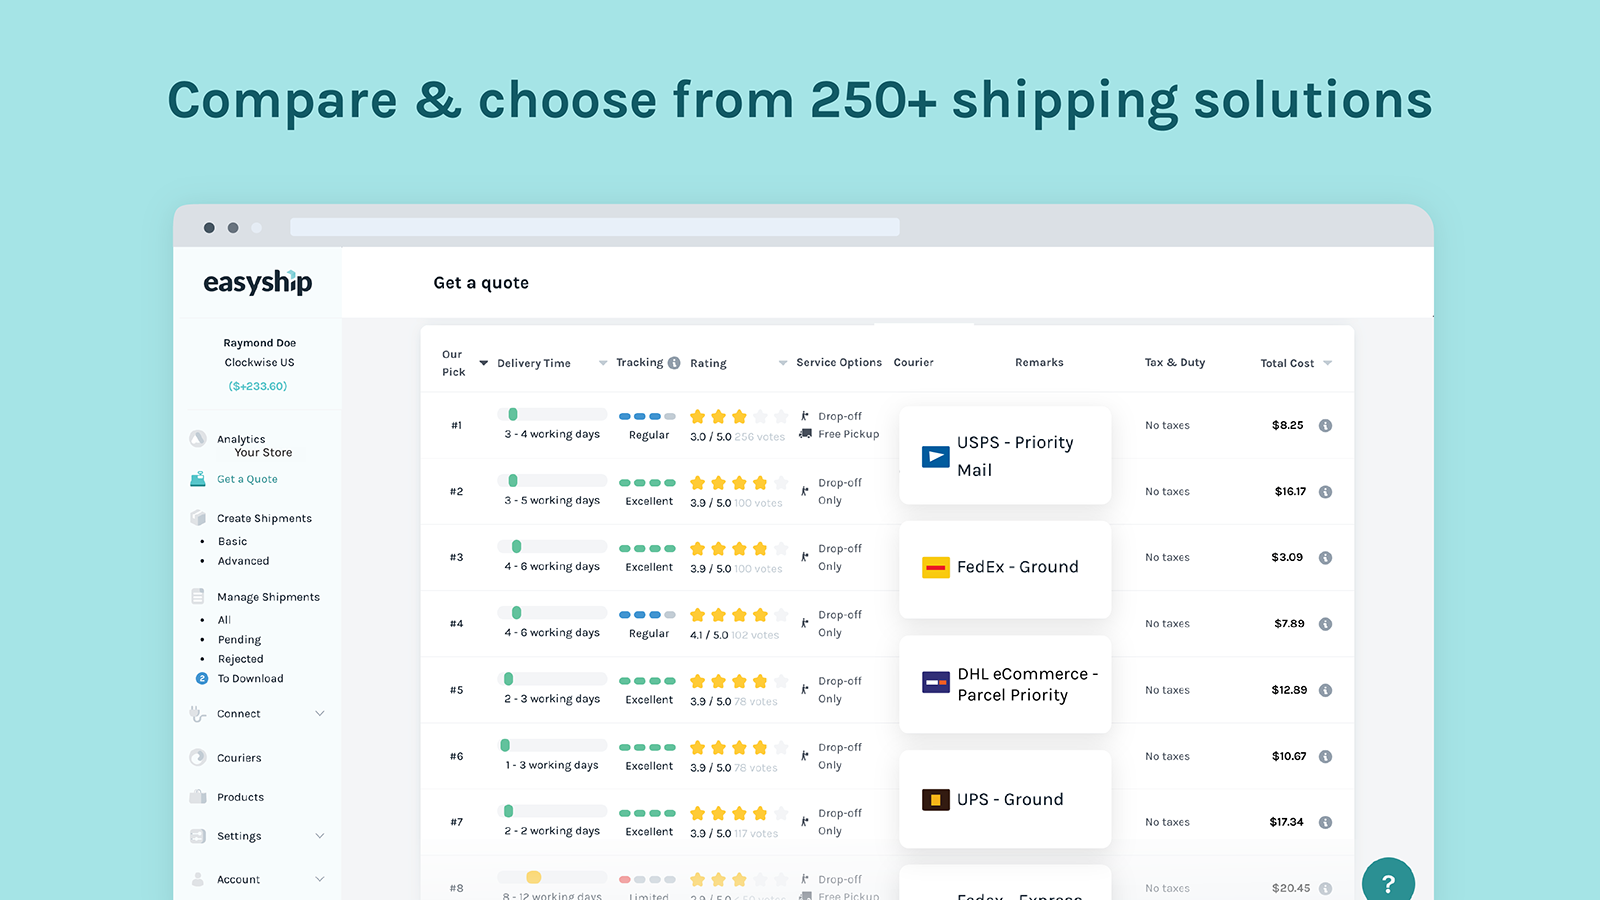 Easyship compares and offers over 250 shipping solutions.